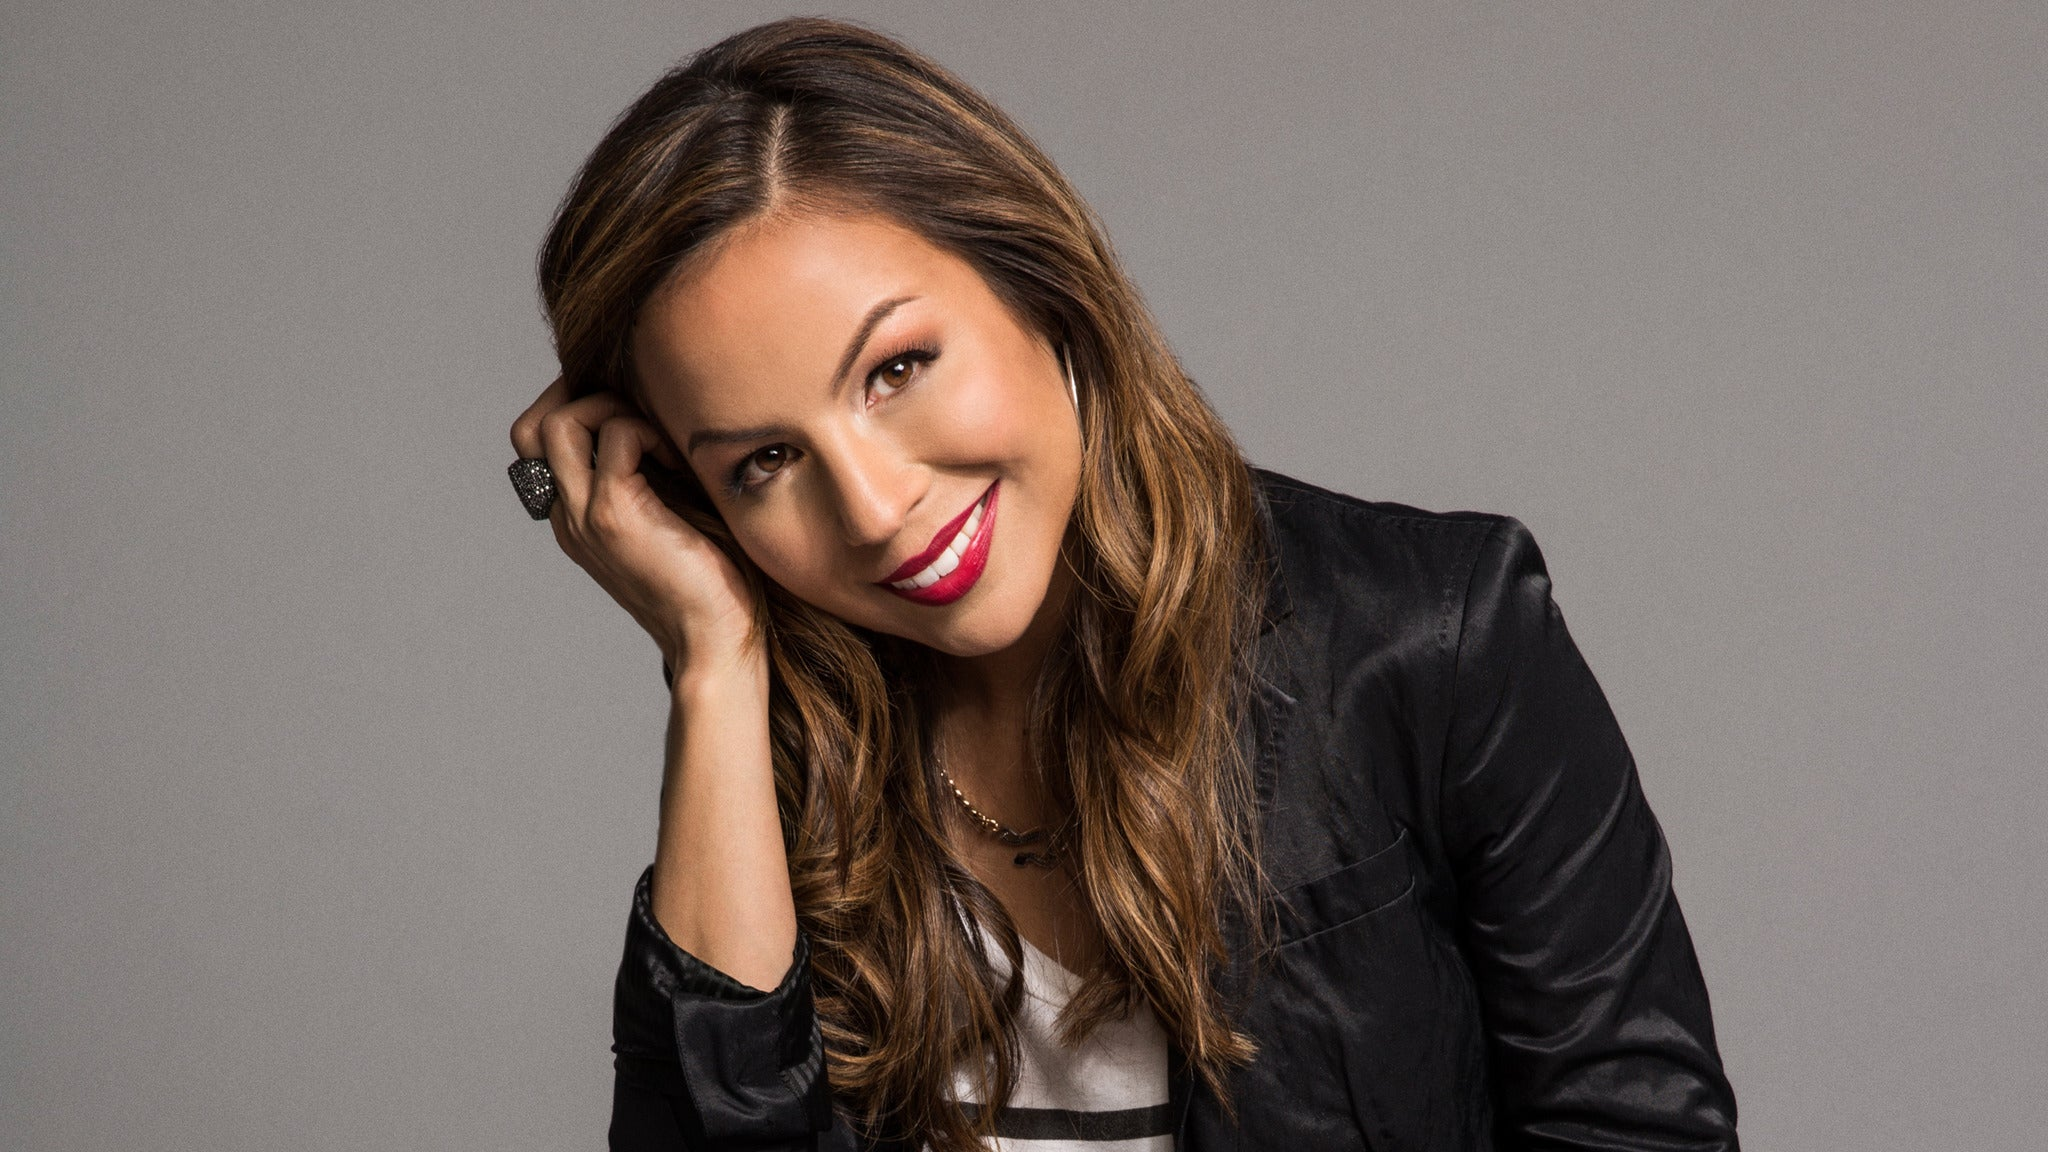 Anjelah Johnson at San Jose Improv - San Jose, CA 95113